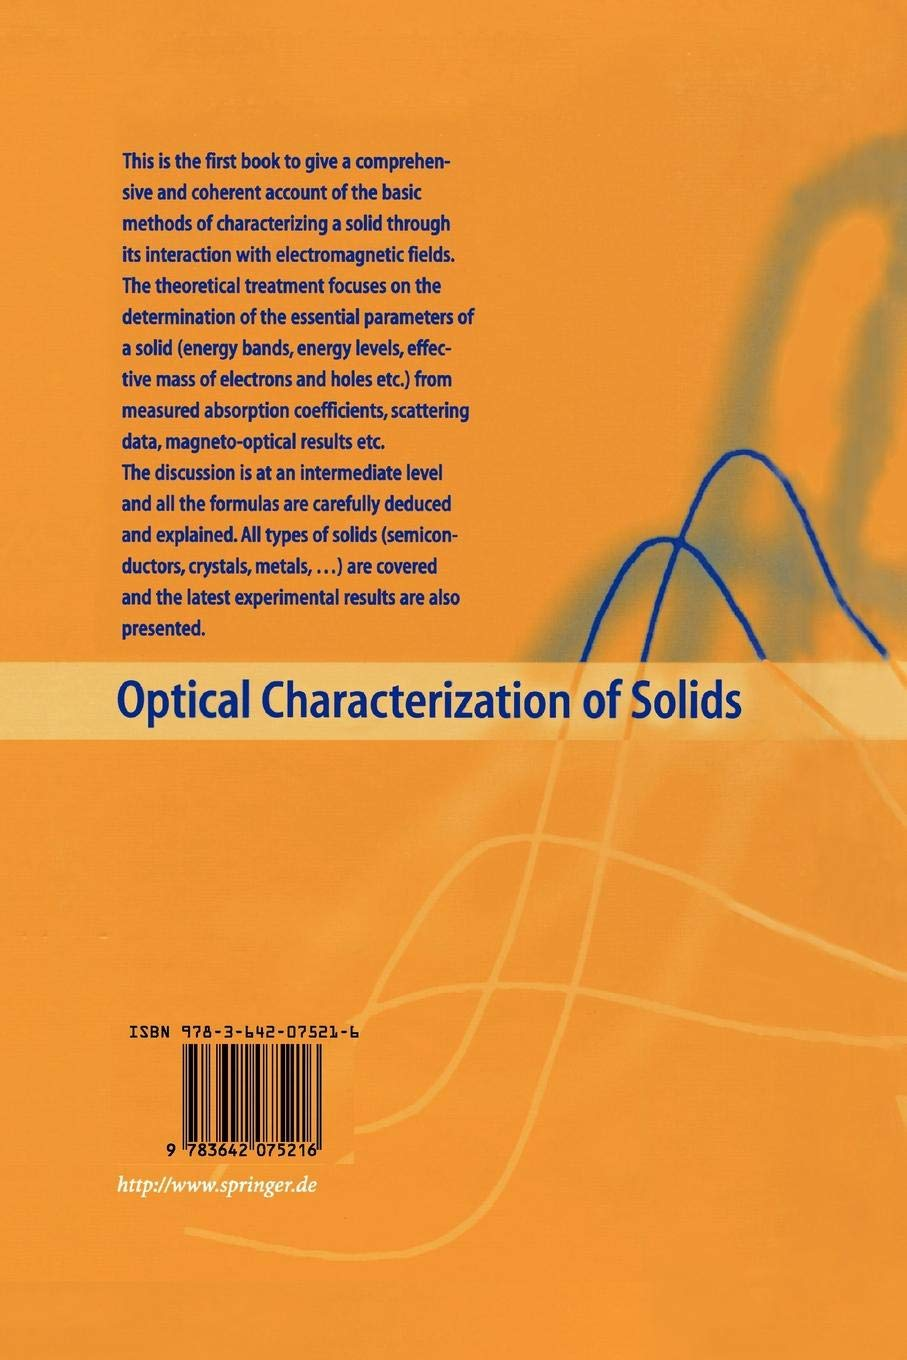 Optical Characterization of Solids